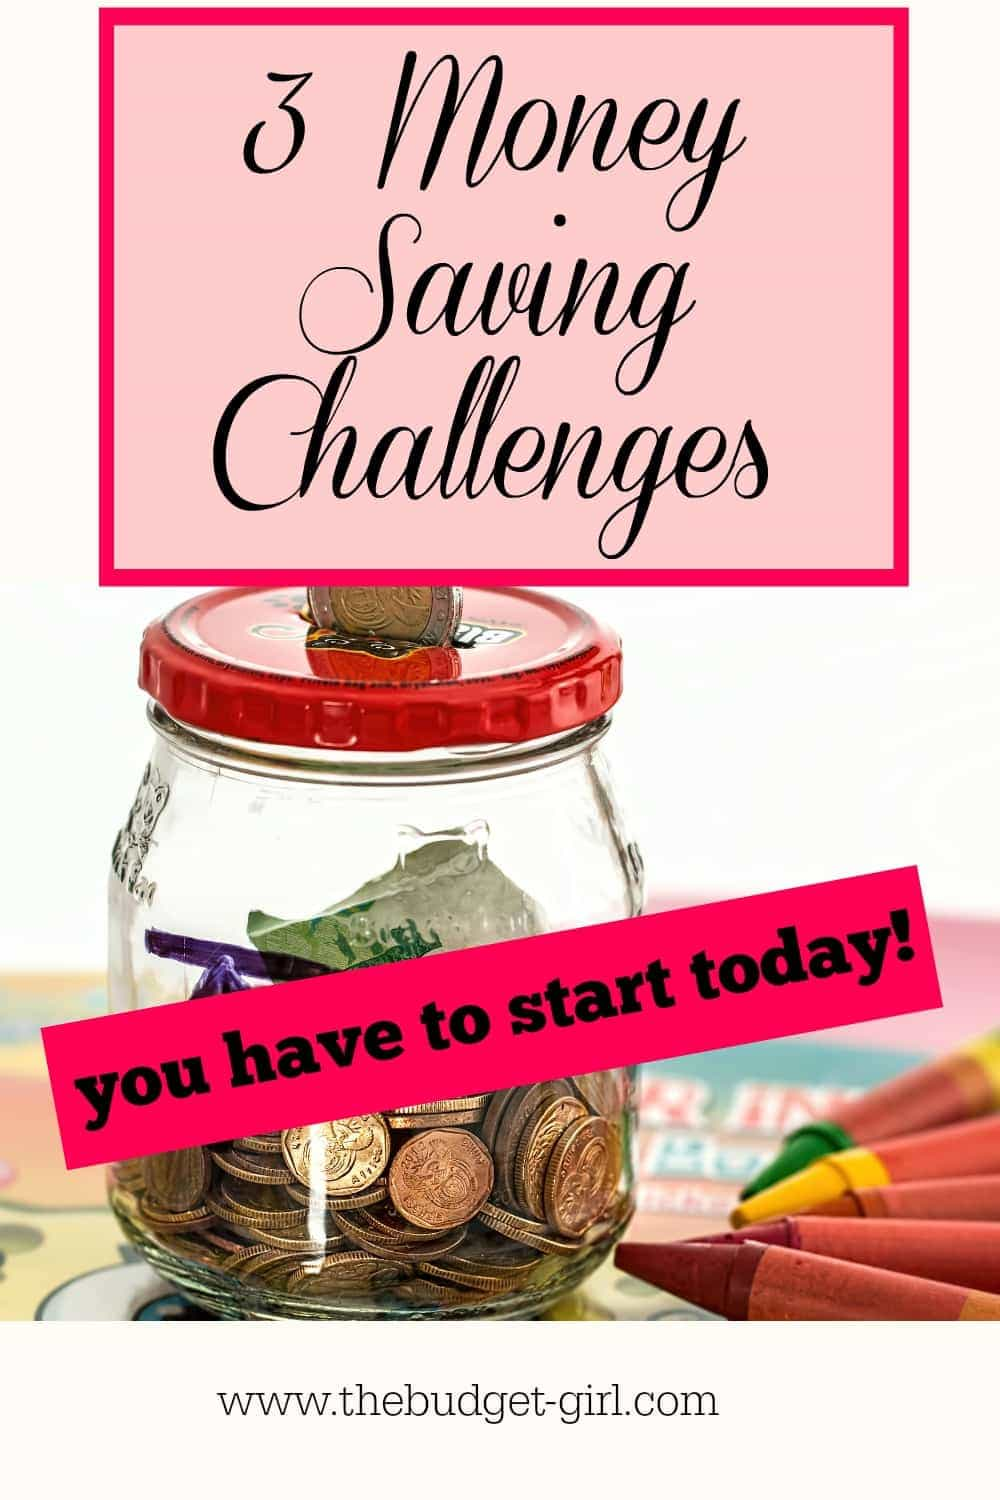 money saving challenges you have to start today